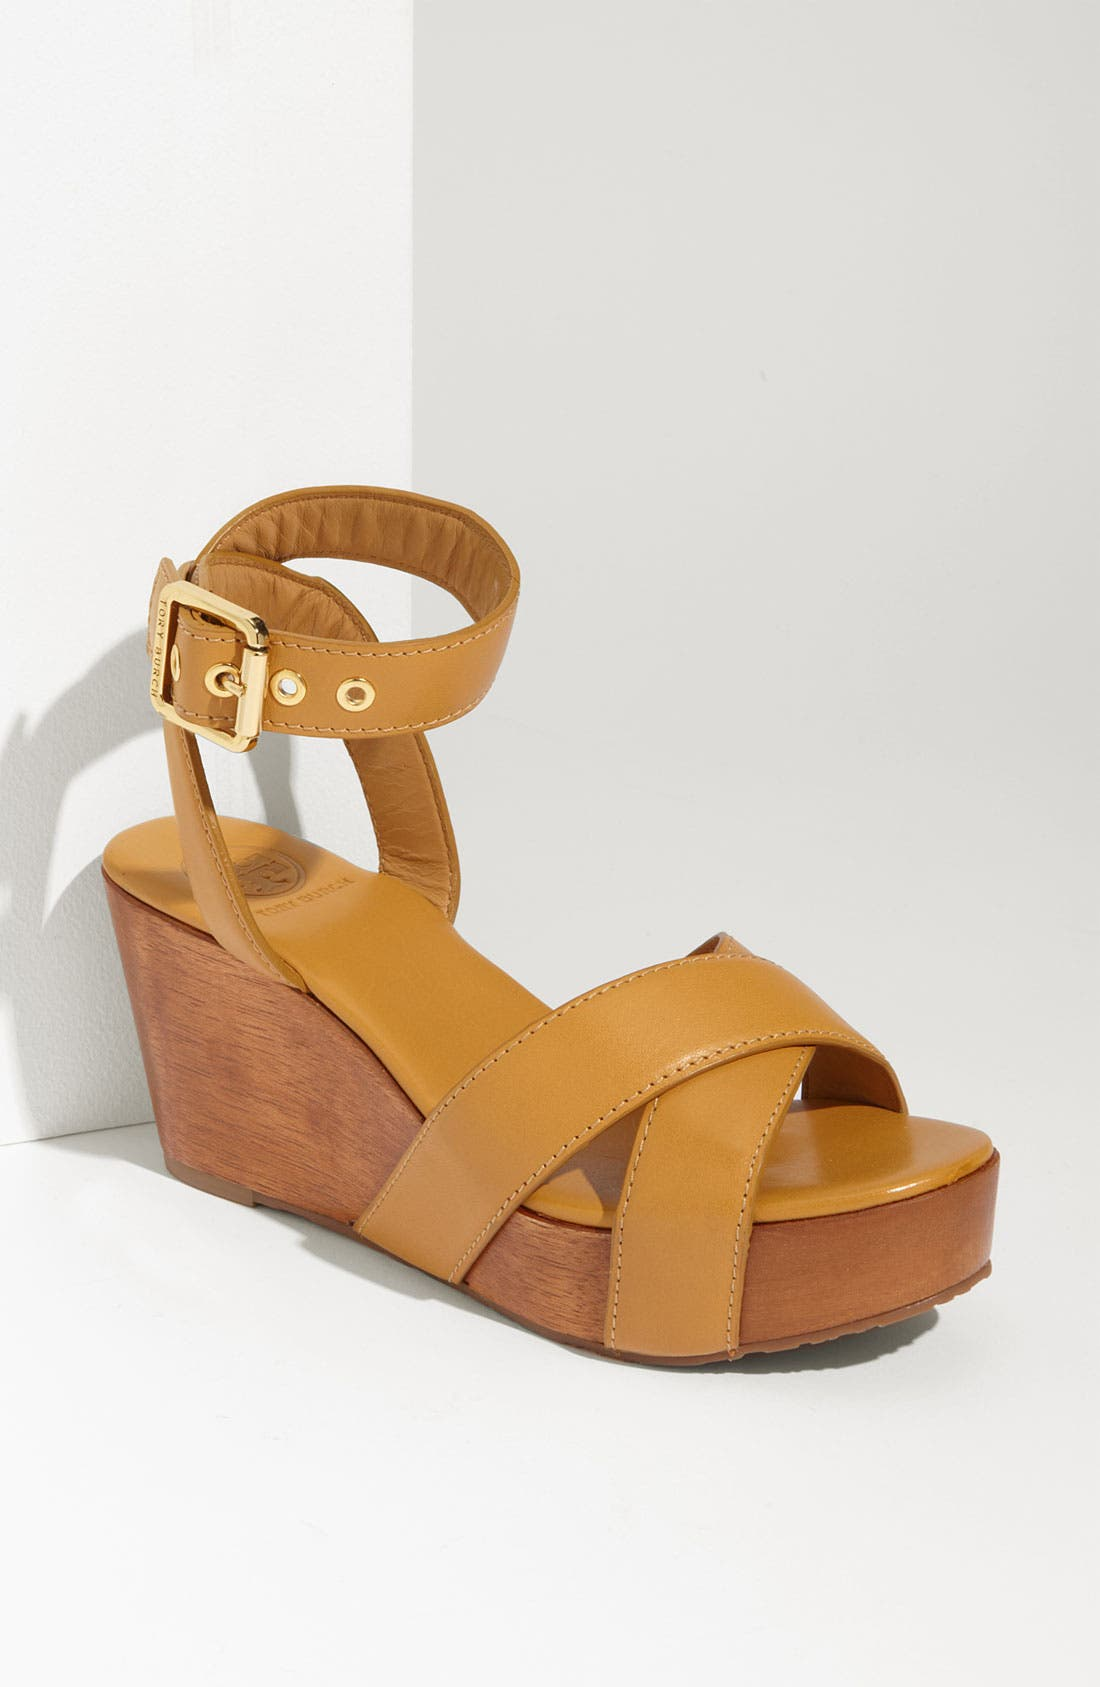 Alternate Image 1 Selected - Tory Burch 'Almita' Wedge Sandal